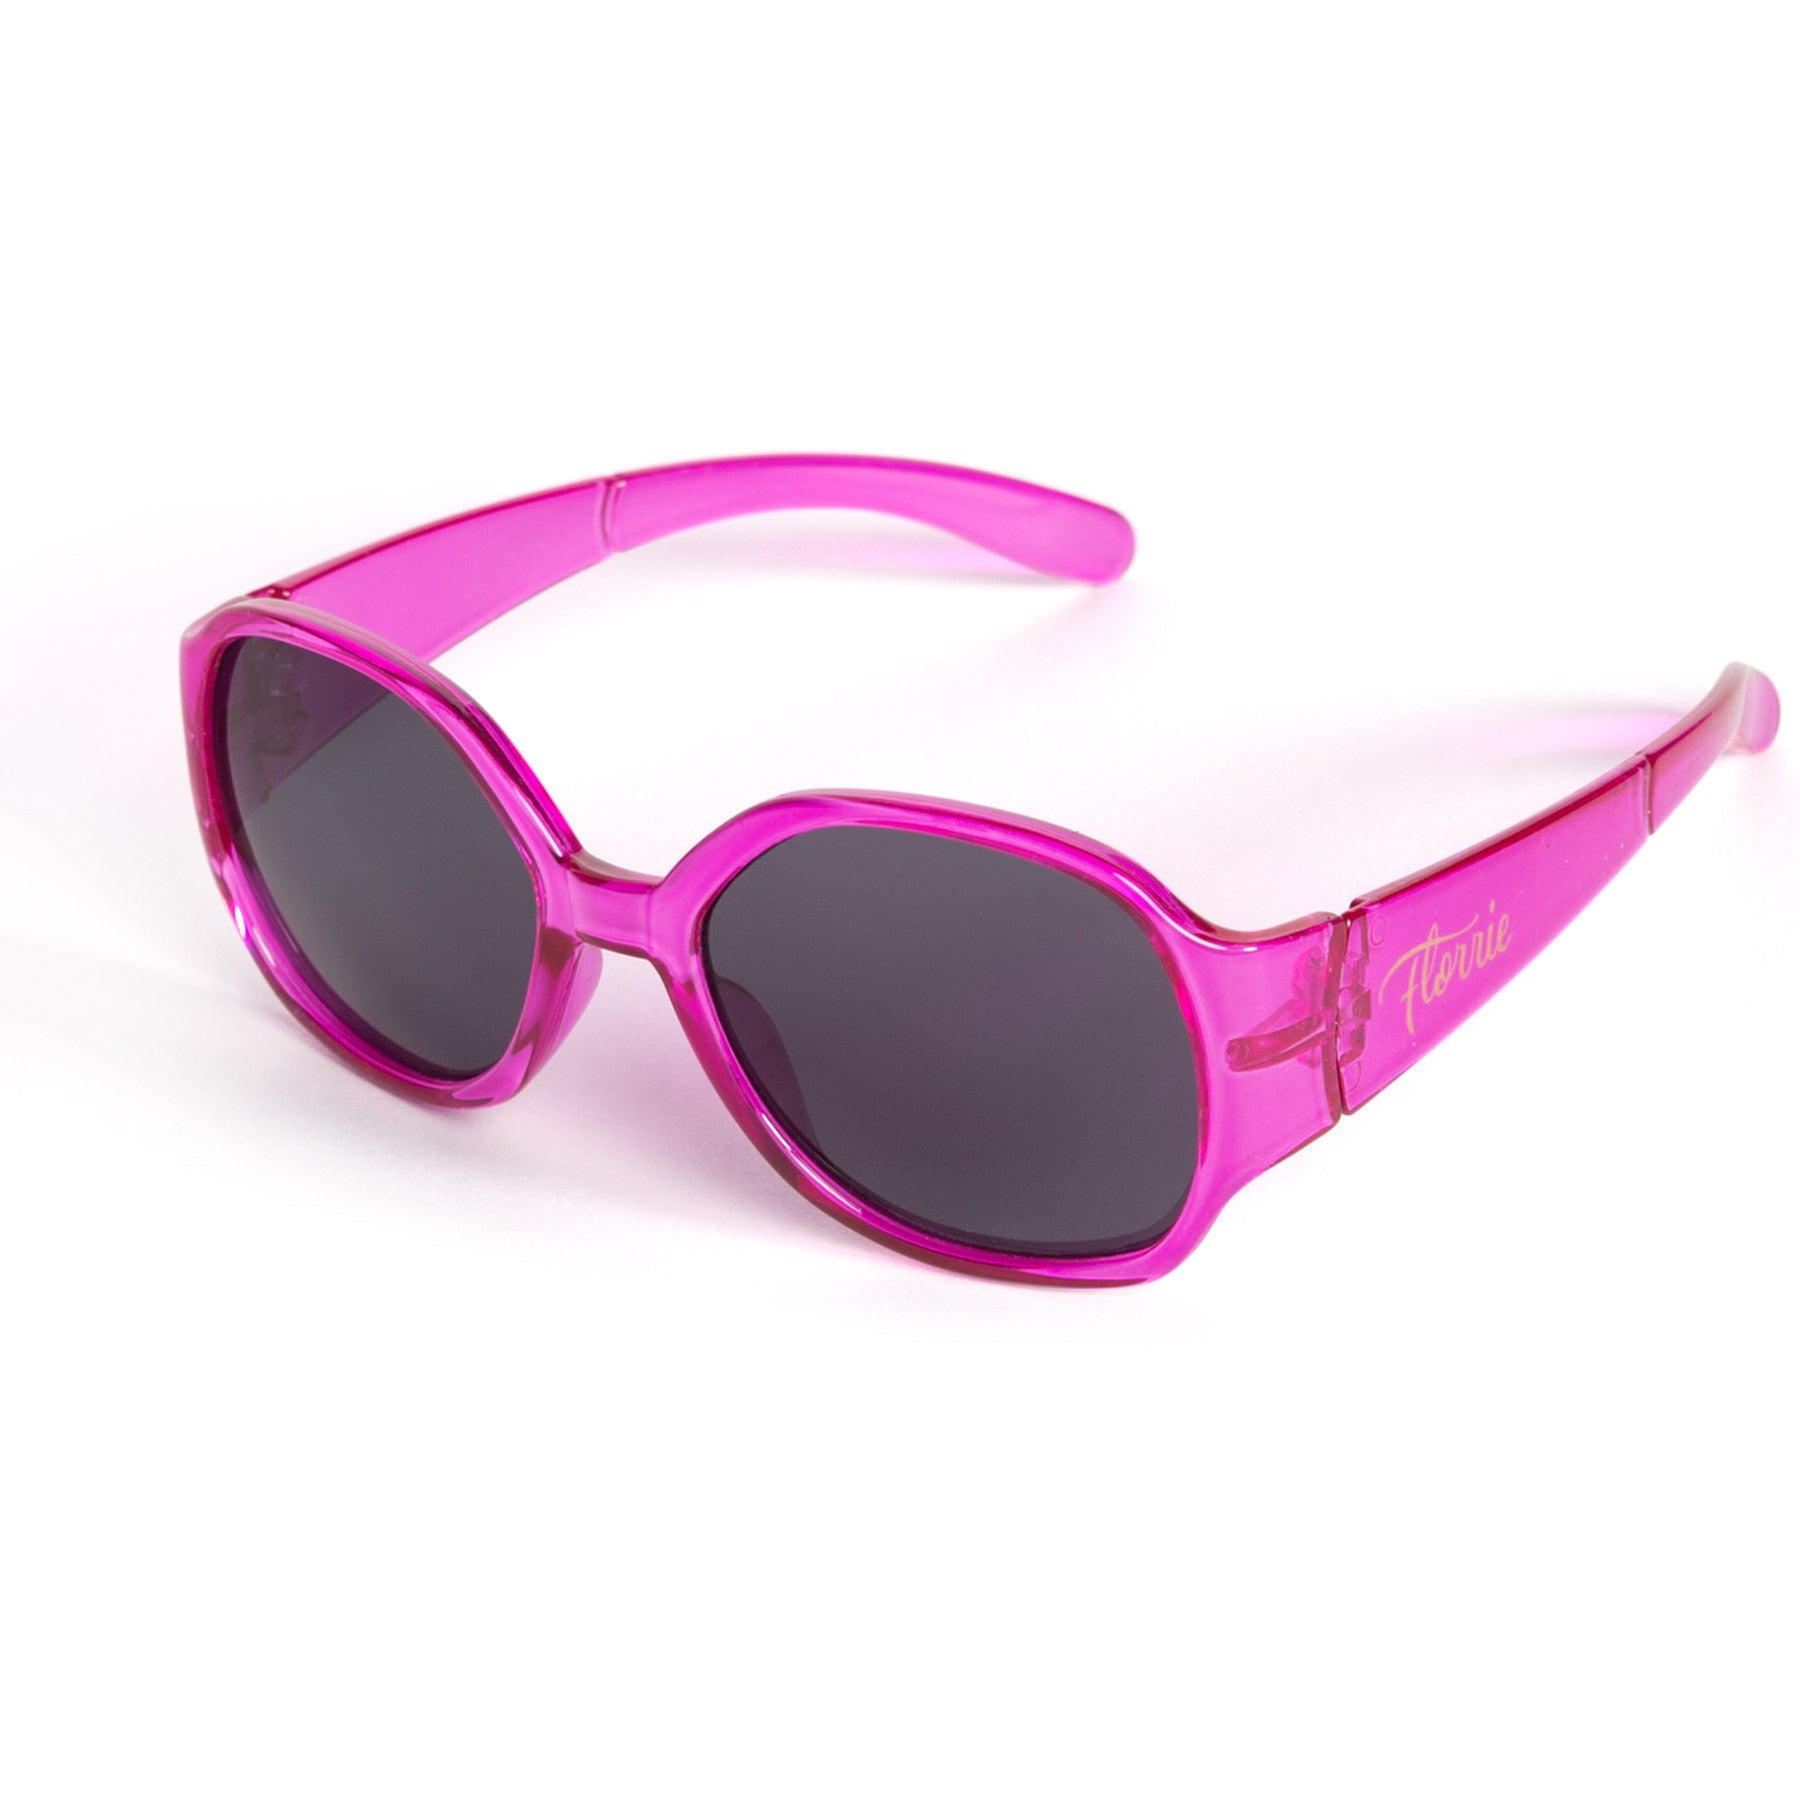 Round Girl Sunglasses